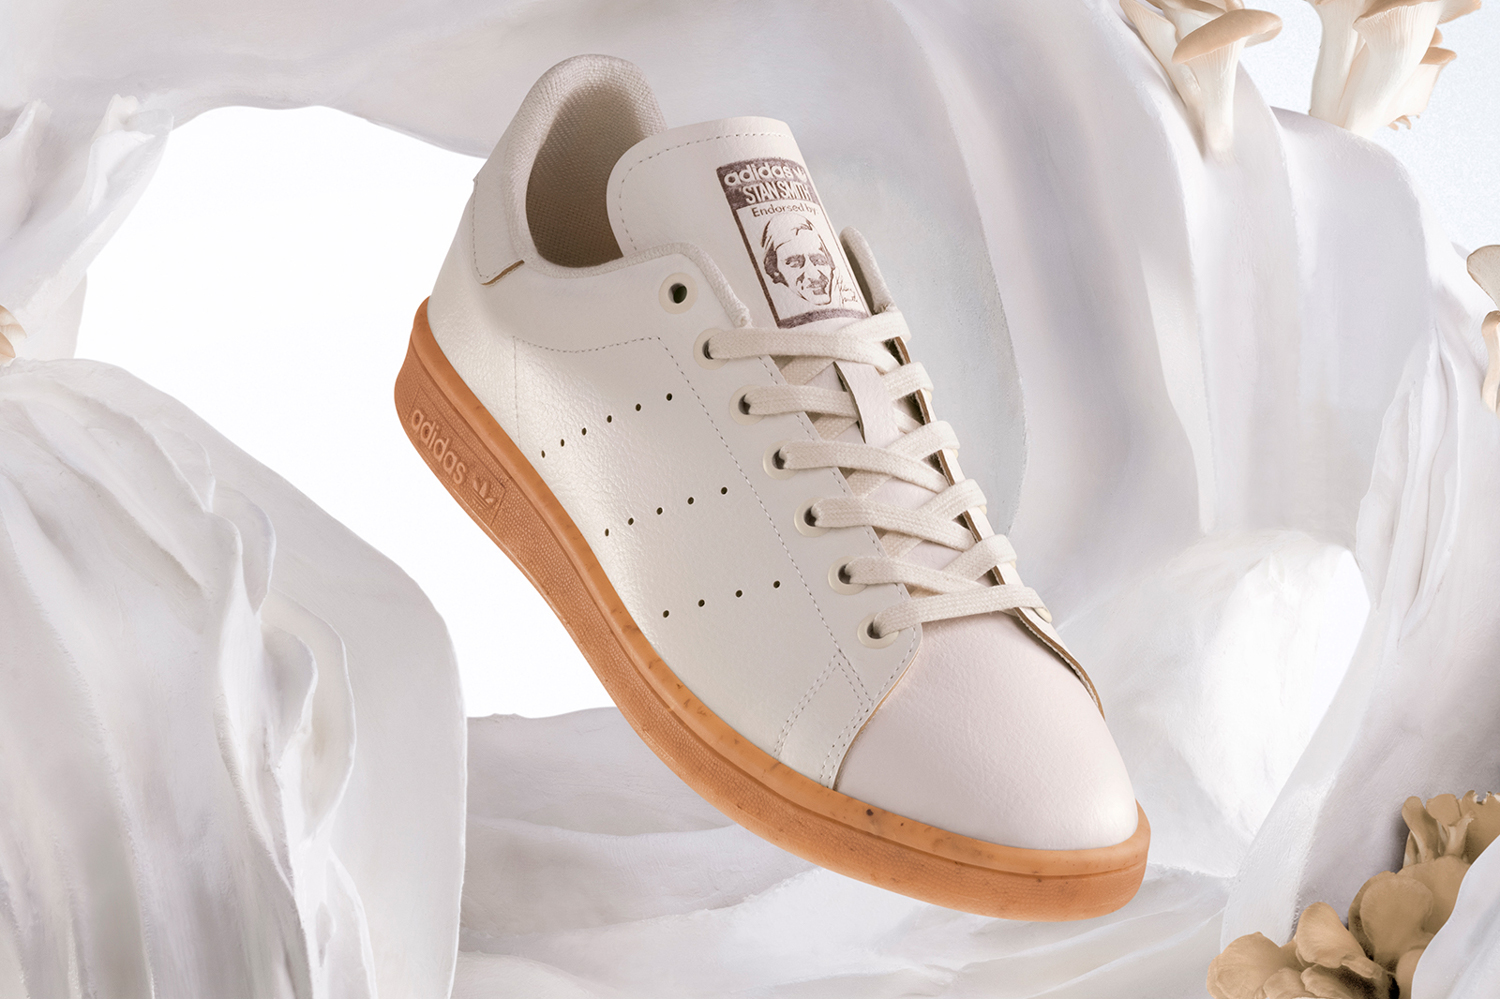 Adidas stan smith mylo bolt threads mushroom leather mycelium sneakers originals natural rubber vegan plant based material shoes